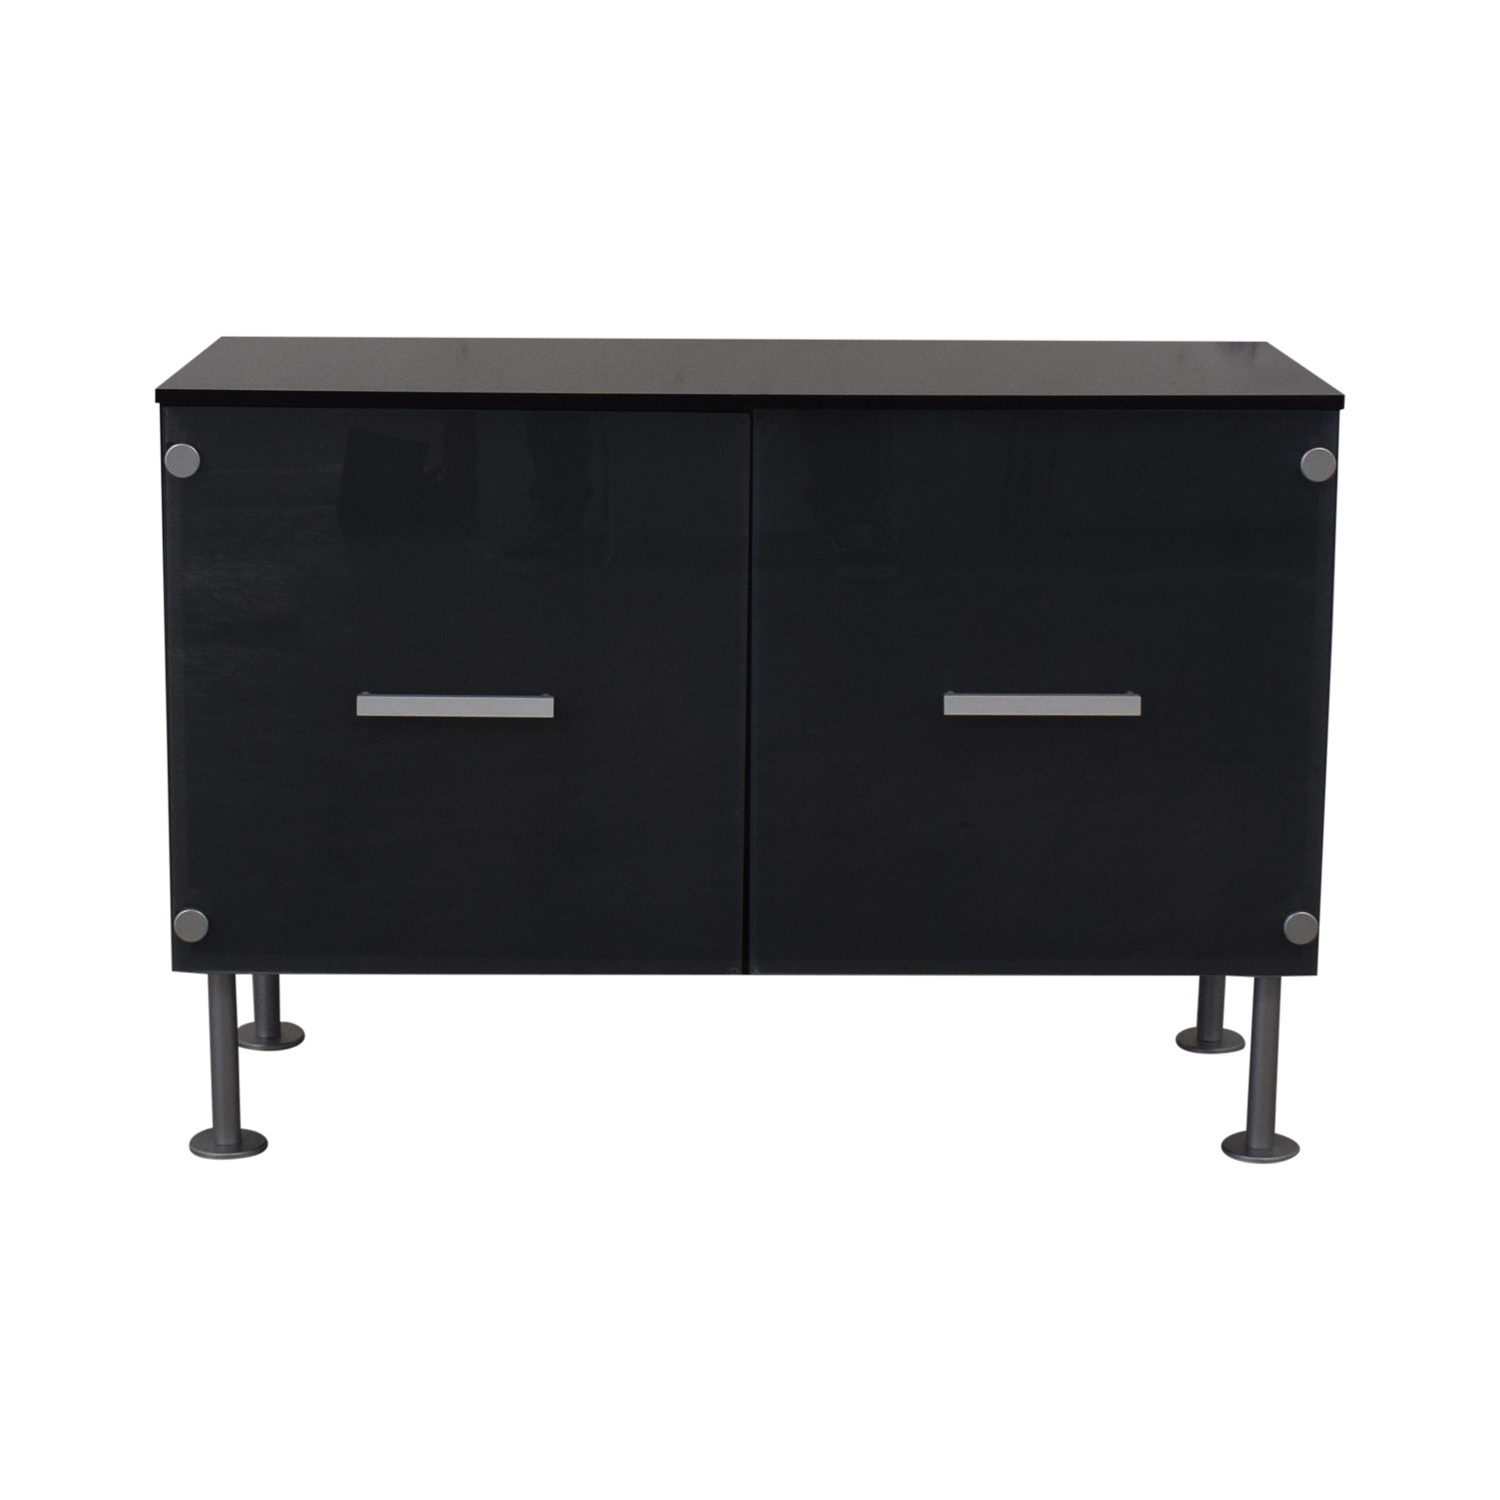 BoConcept BoConcept Media Console with Frost Doors price